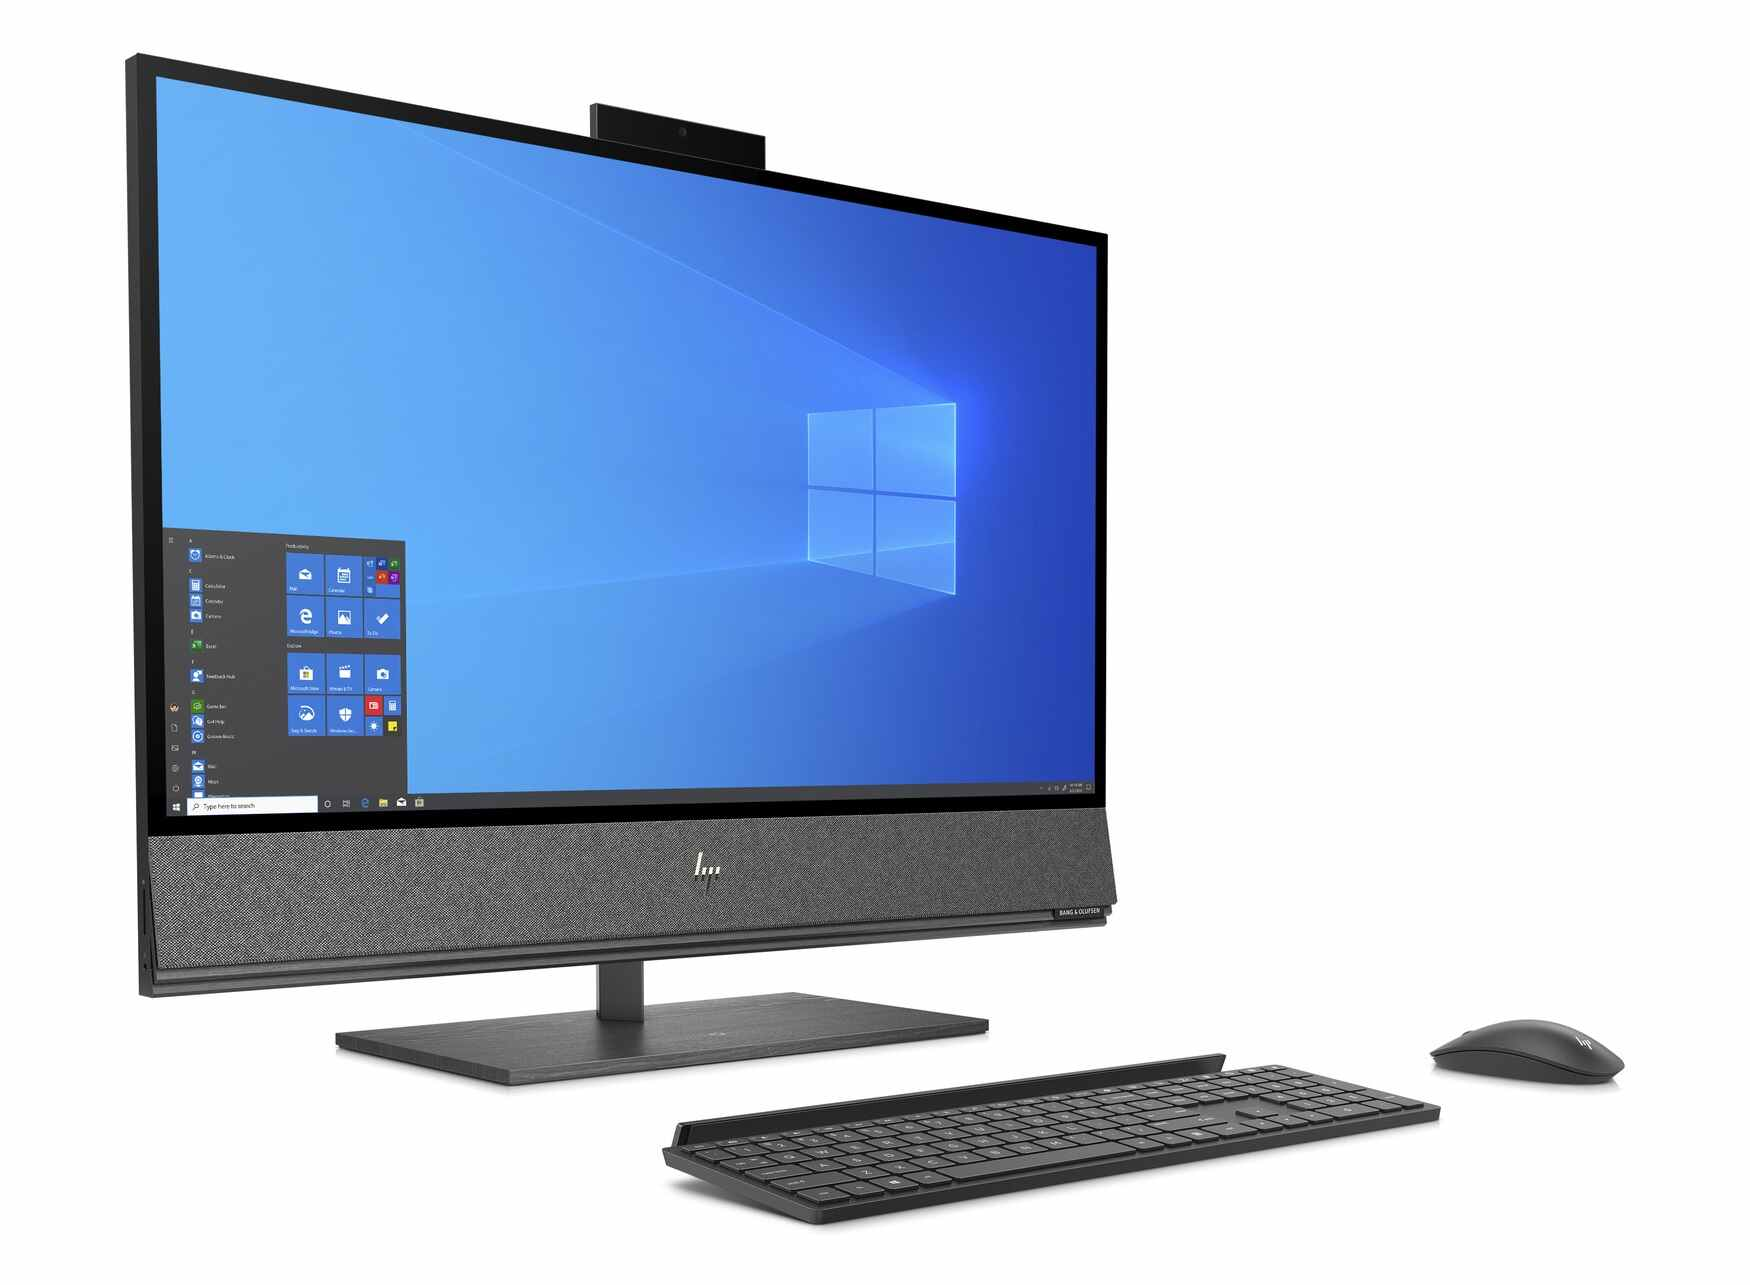 Tout-En-Un HP ENVY 32-a0028nf - Windows 10 Famille 64, NVIDIA® GeForce RTX™ 2080, i7, 32 Go, 1 To SSD